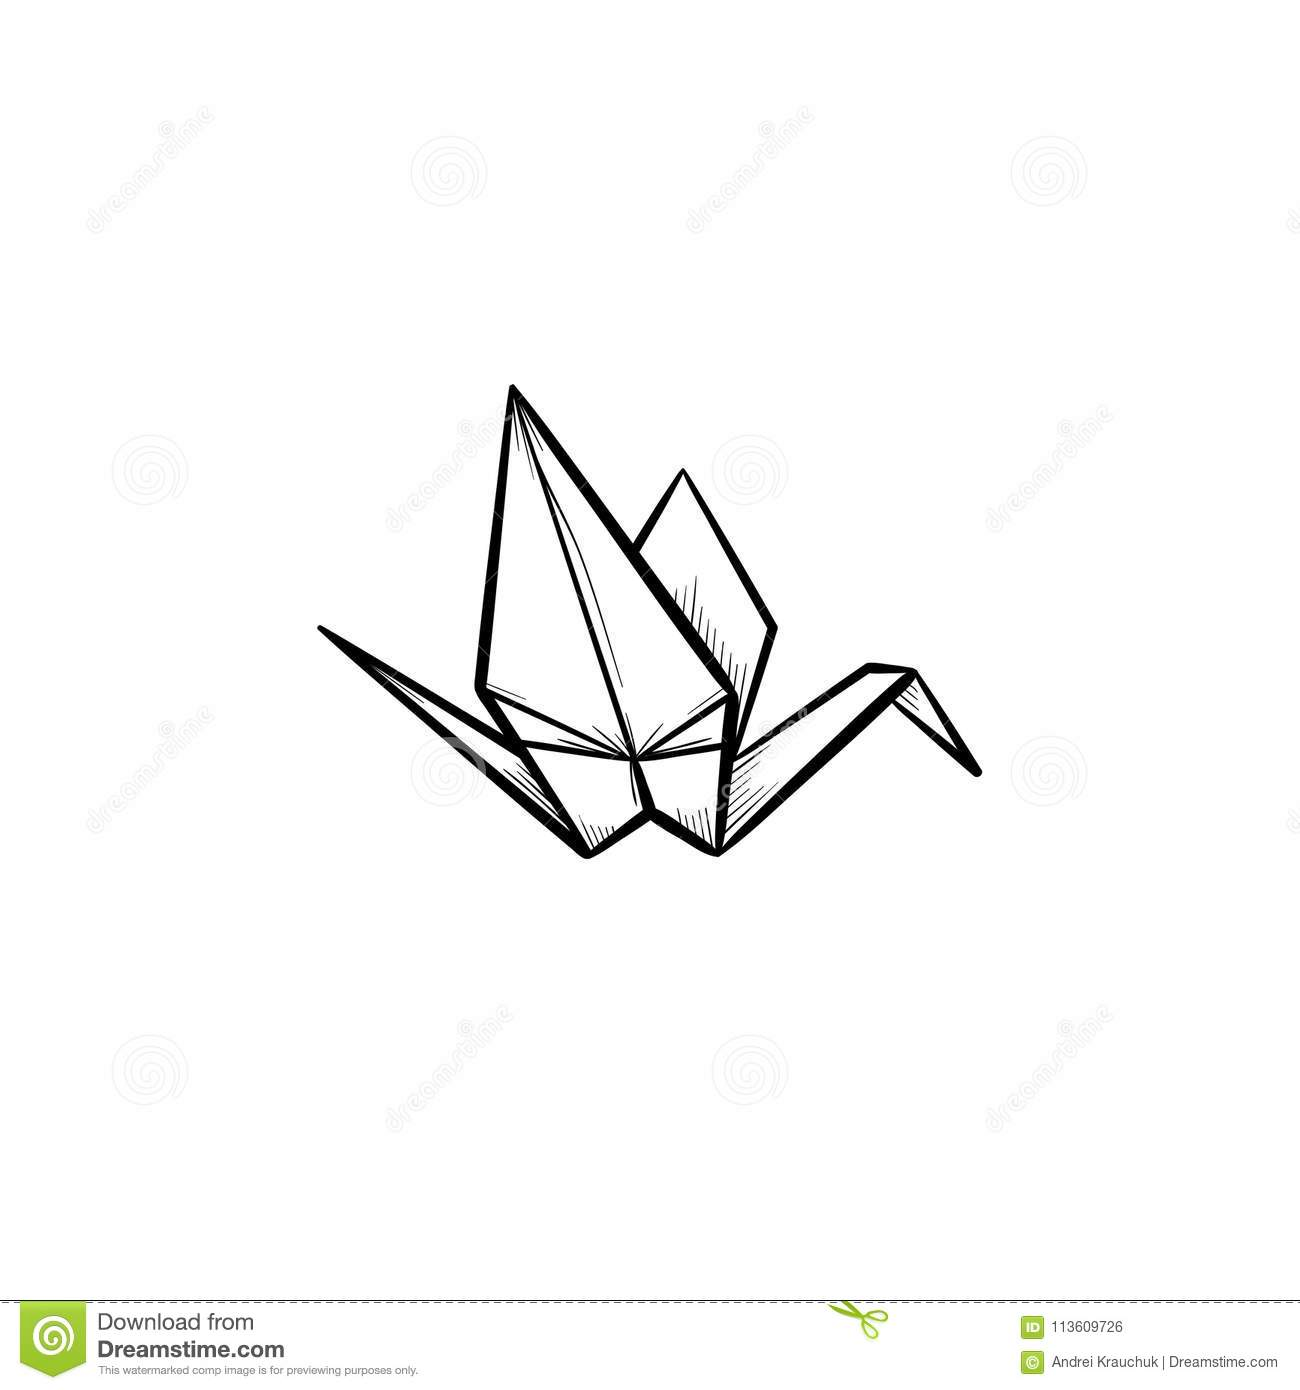 Origami Crane Hand Drawn Sketch Icon Stock Vector